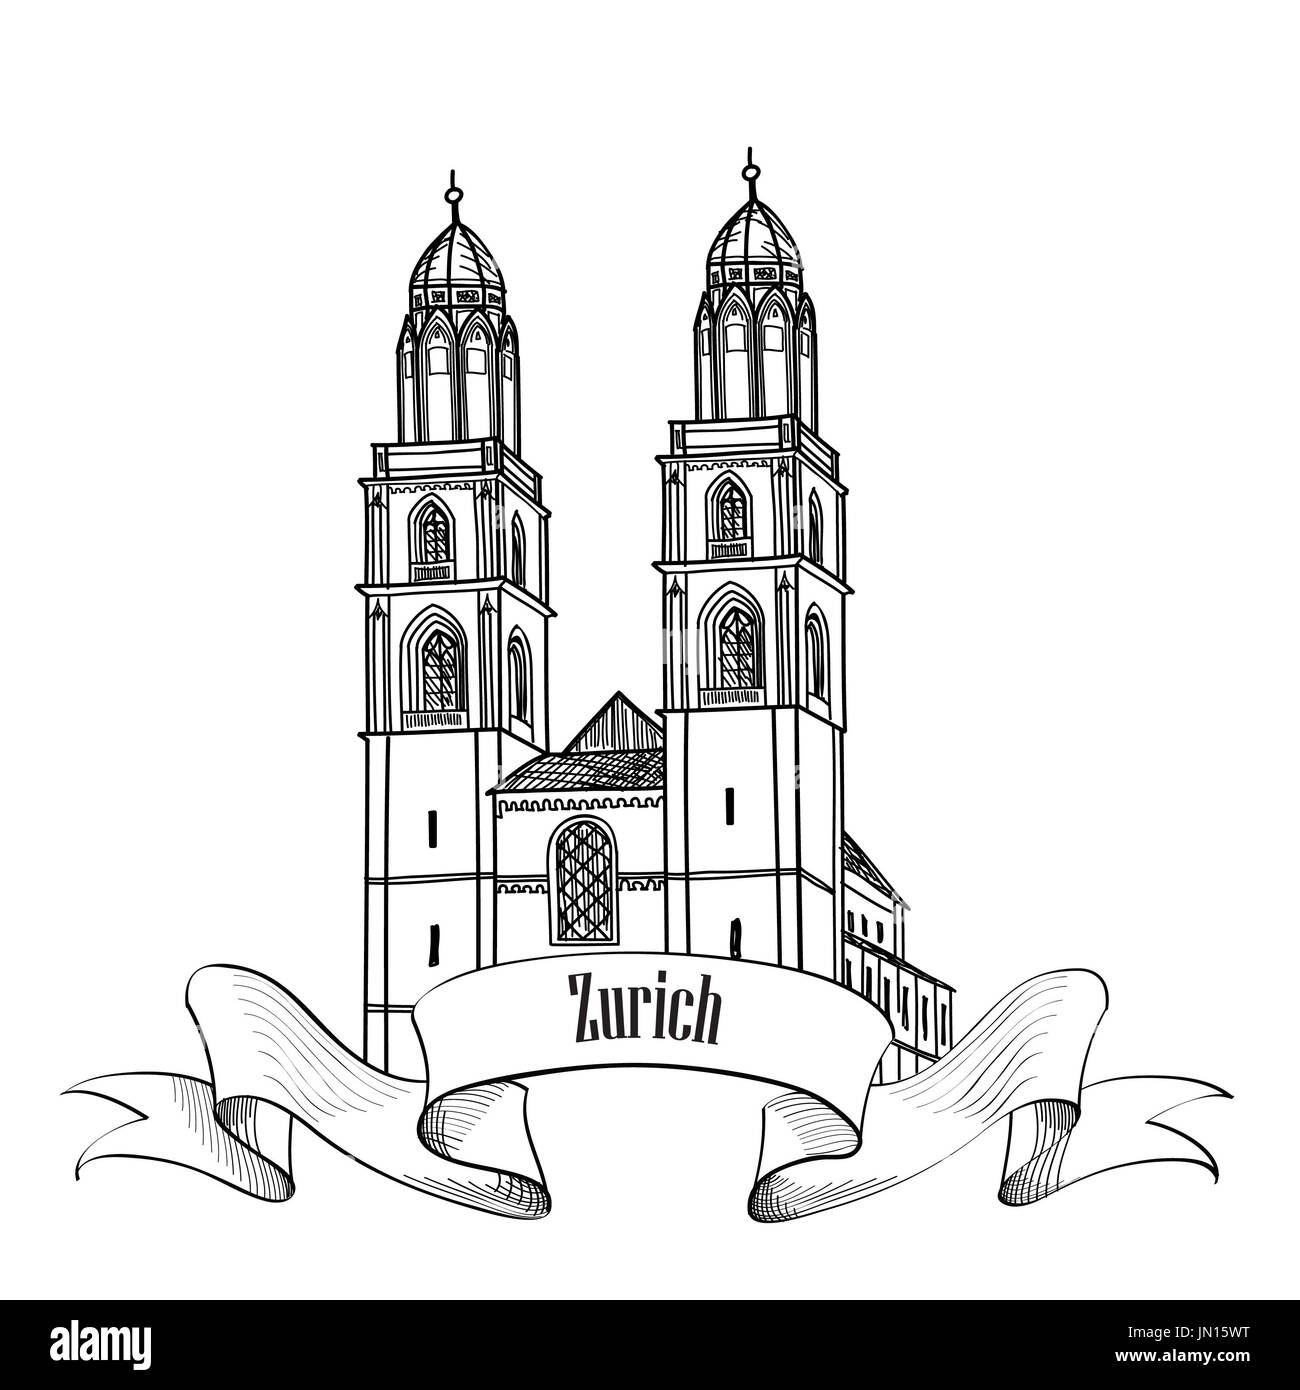 Zurich. City landmark Great Minster label. Symbol of the capital of Switzerland. - Stock Image